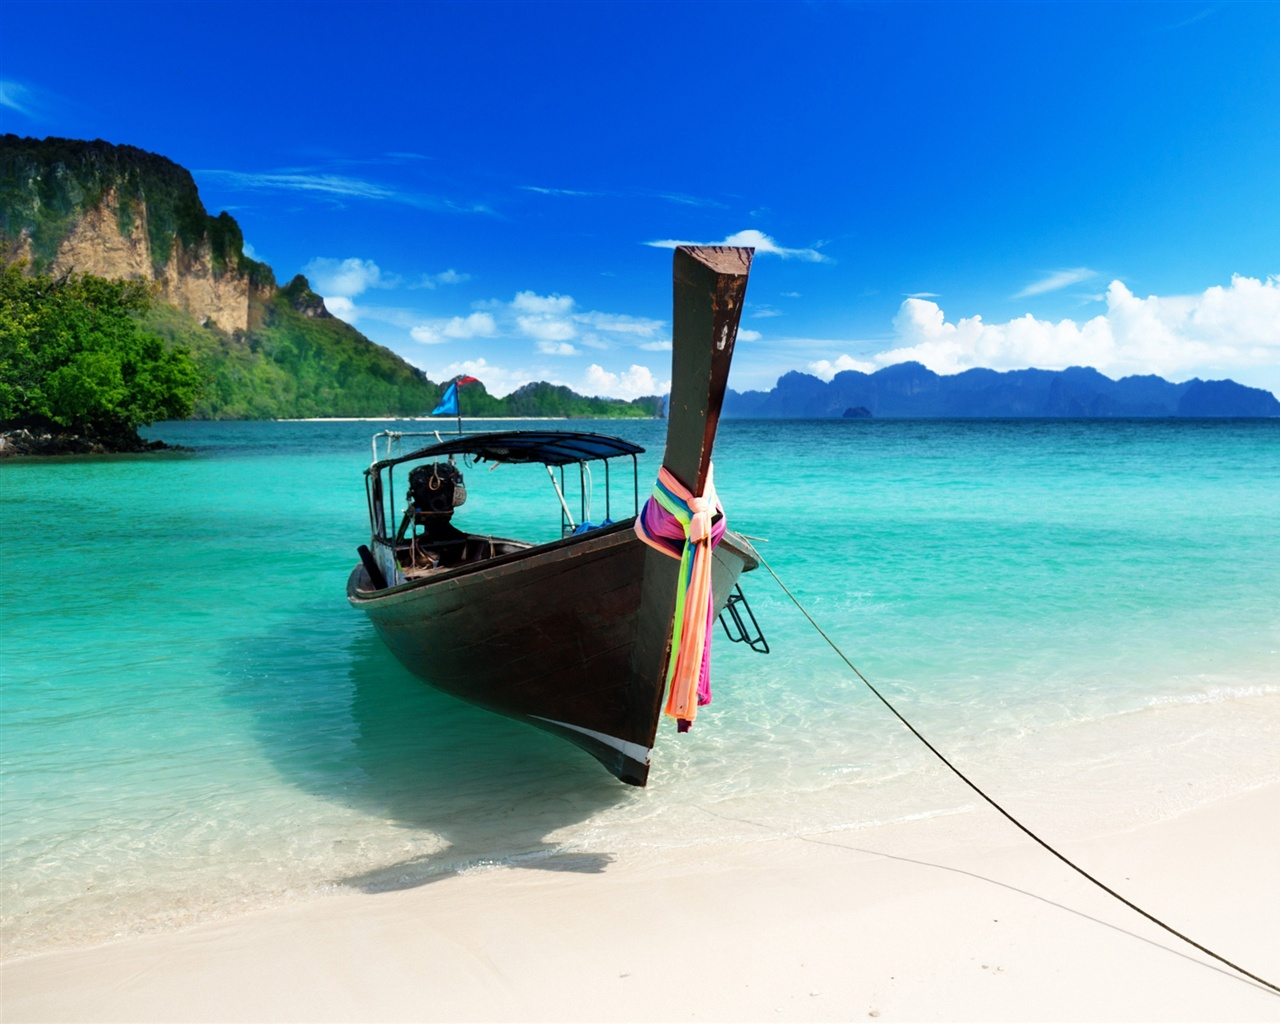 Wallpaper The Blue Beach Boat 2560x1600 Hd Picture Image